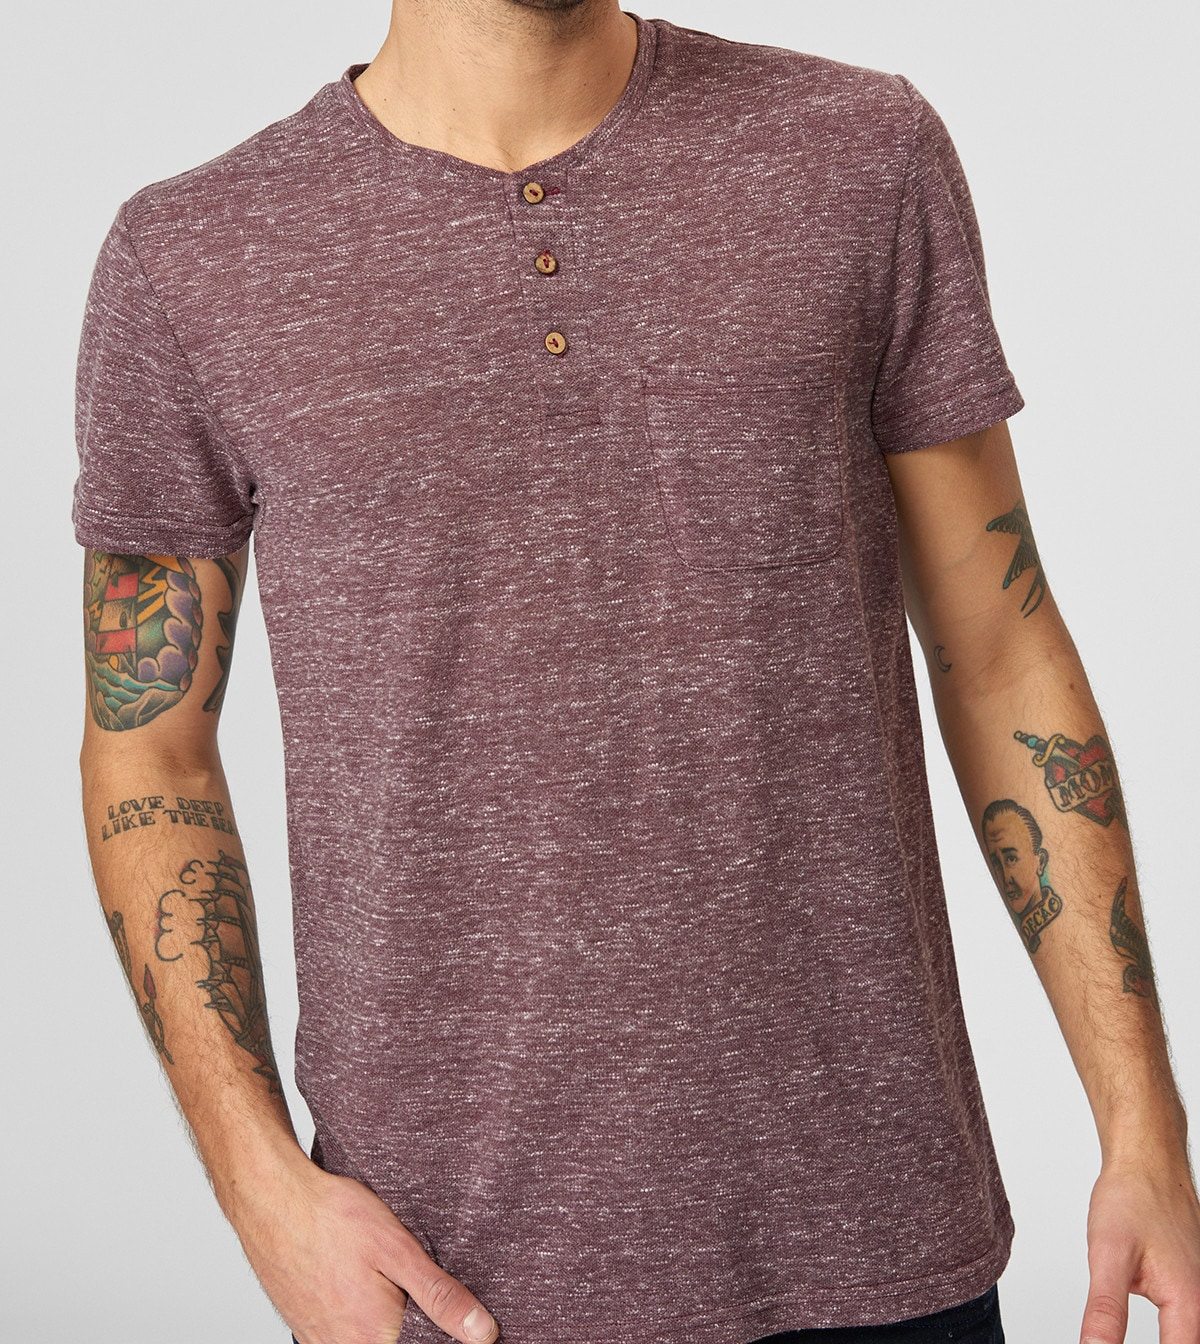 Men's T-shirt Trendyol With Buttons